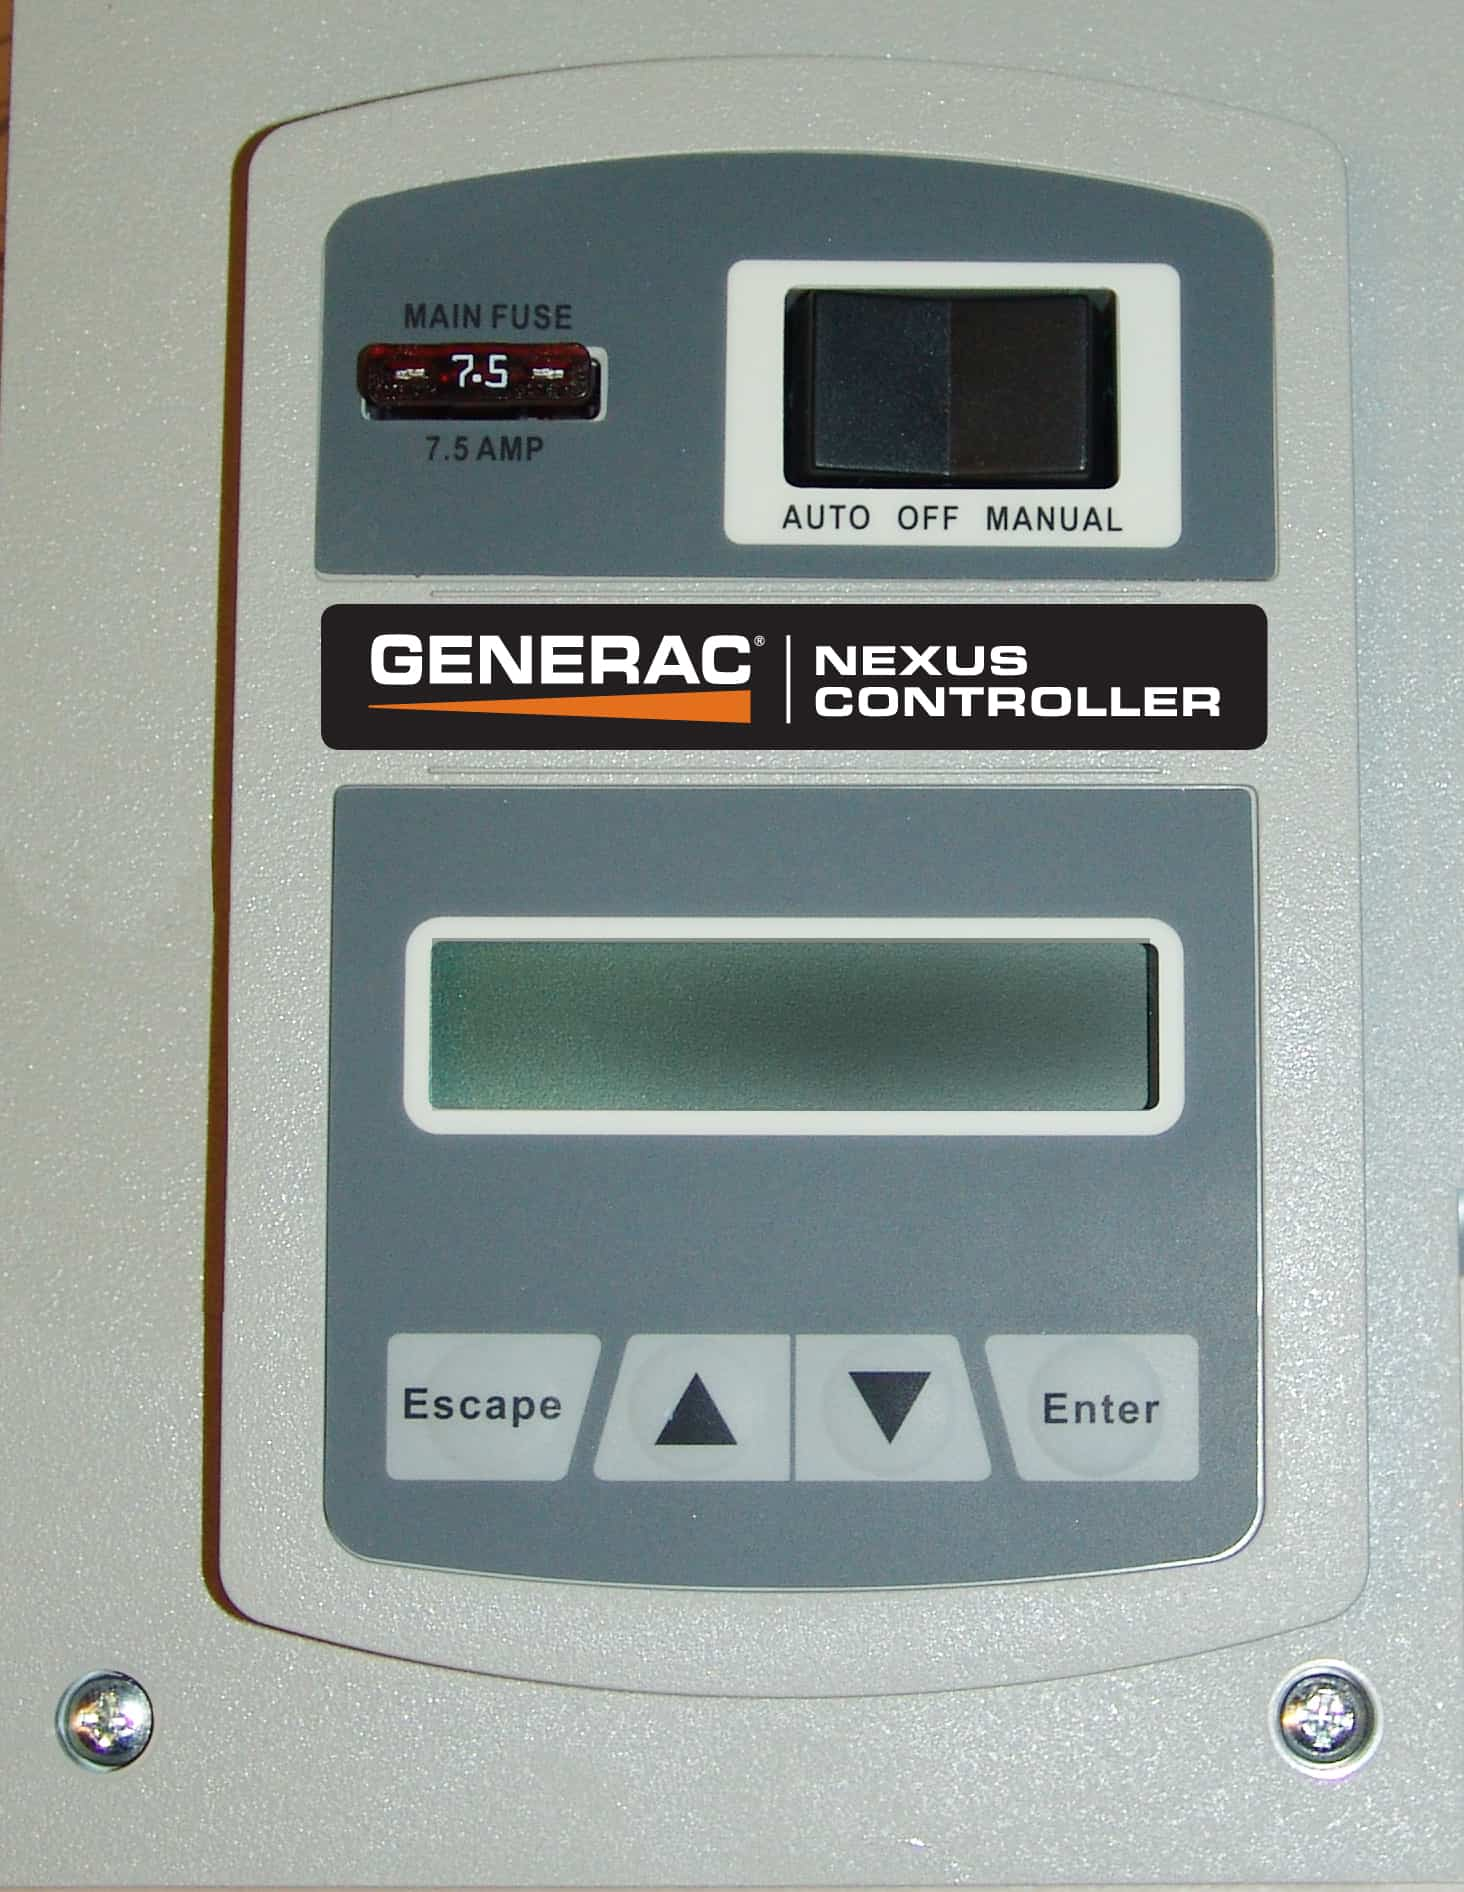 The Generac Nexus ControllerNorwall PowerSystems Blog